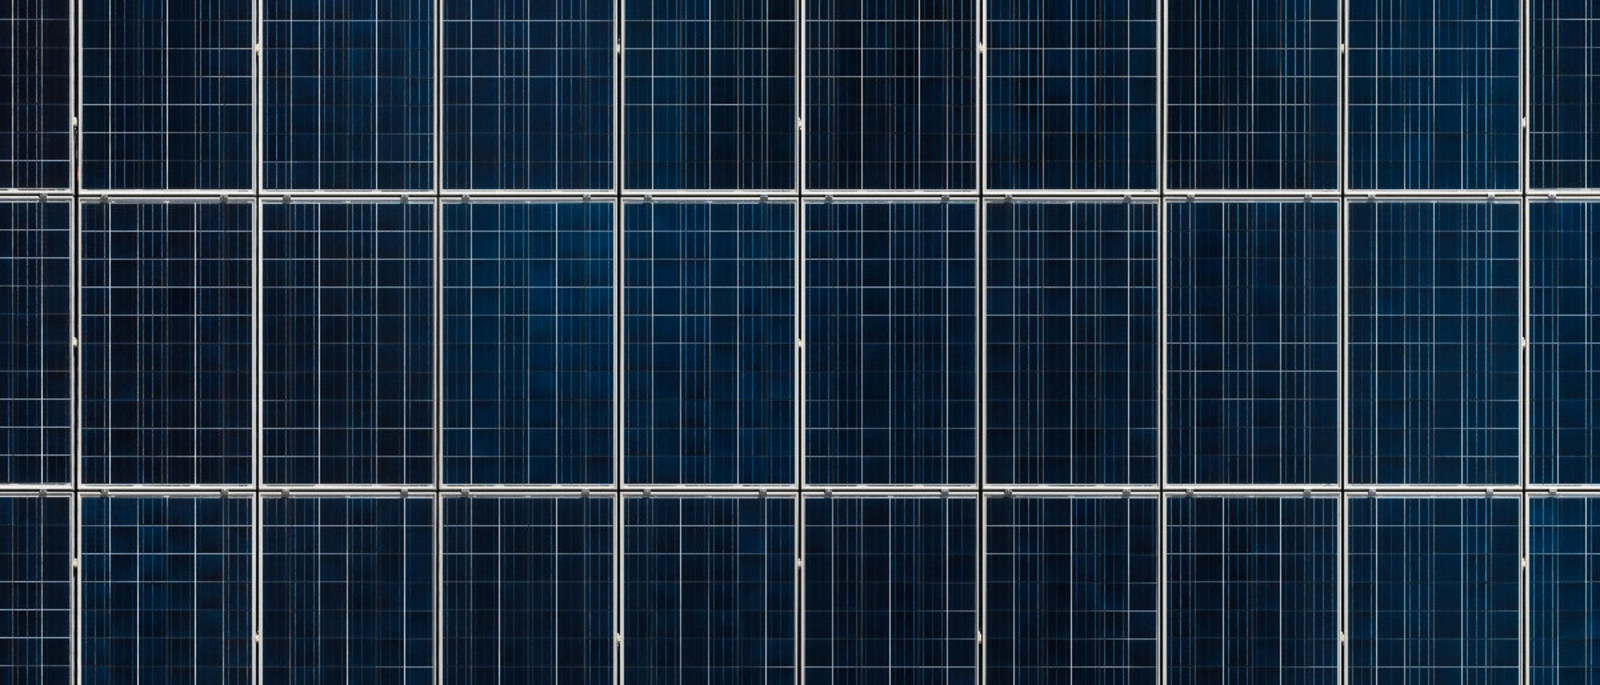 Solar panels seen from above